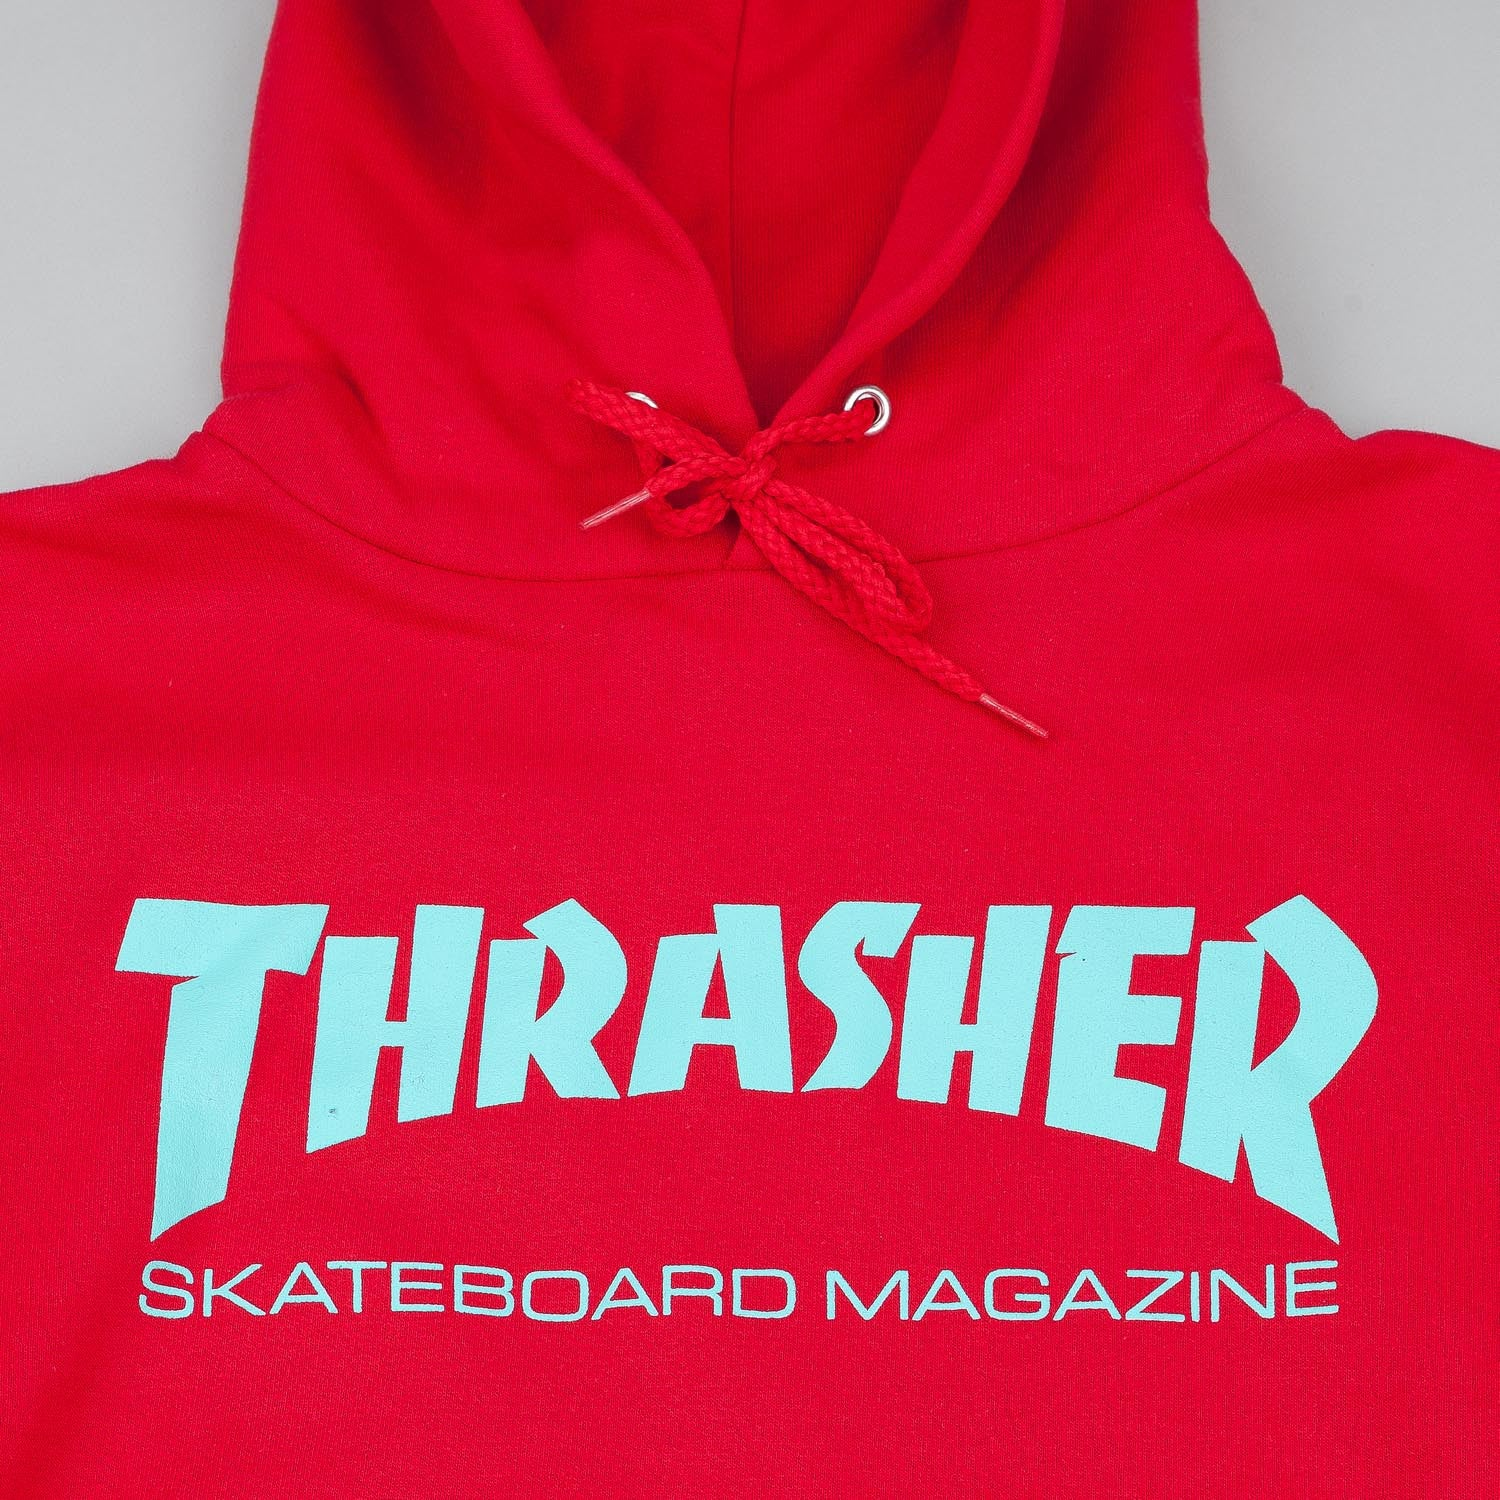 Thrasher Skate Mag Logo Hooded Sweatshirt - Red / Teal